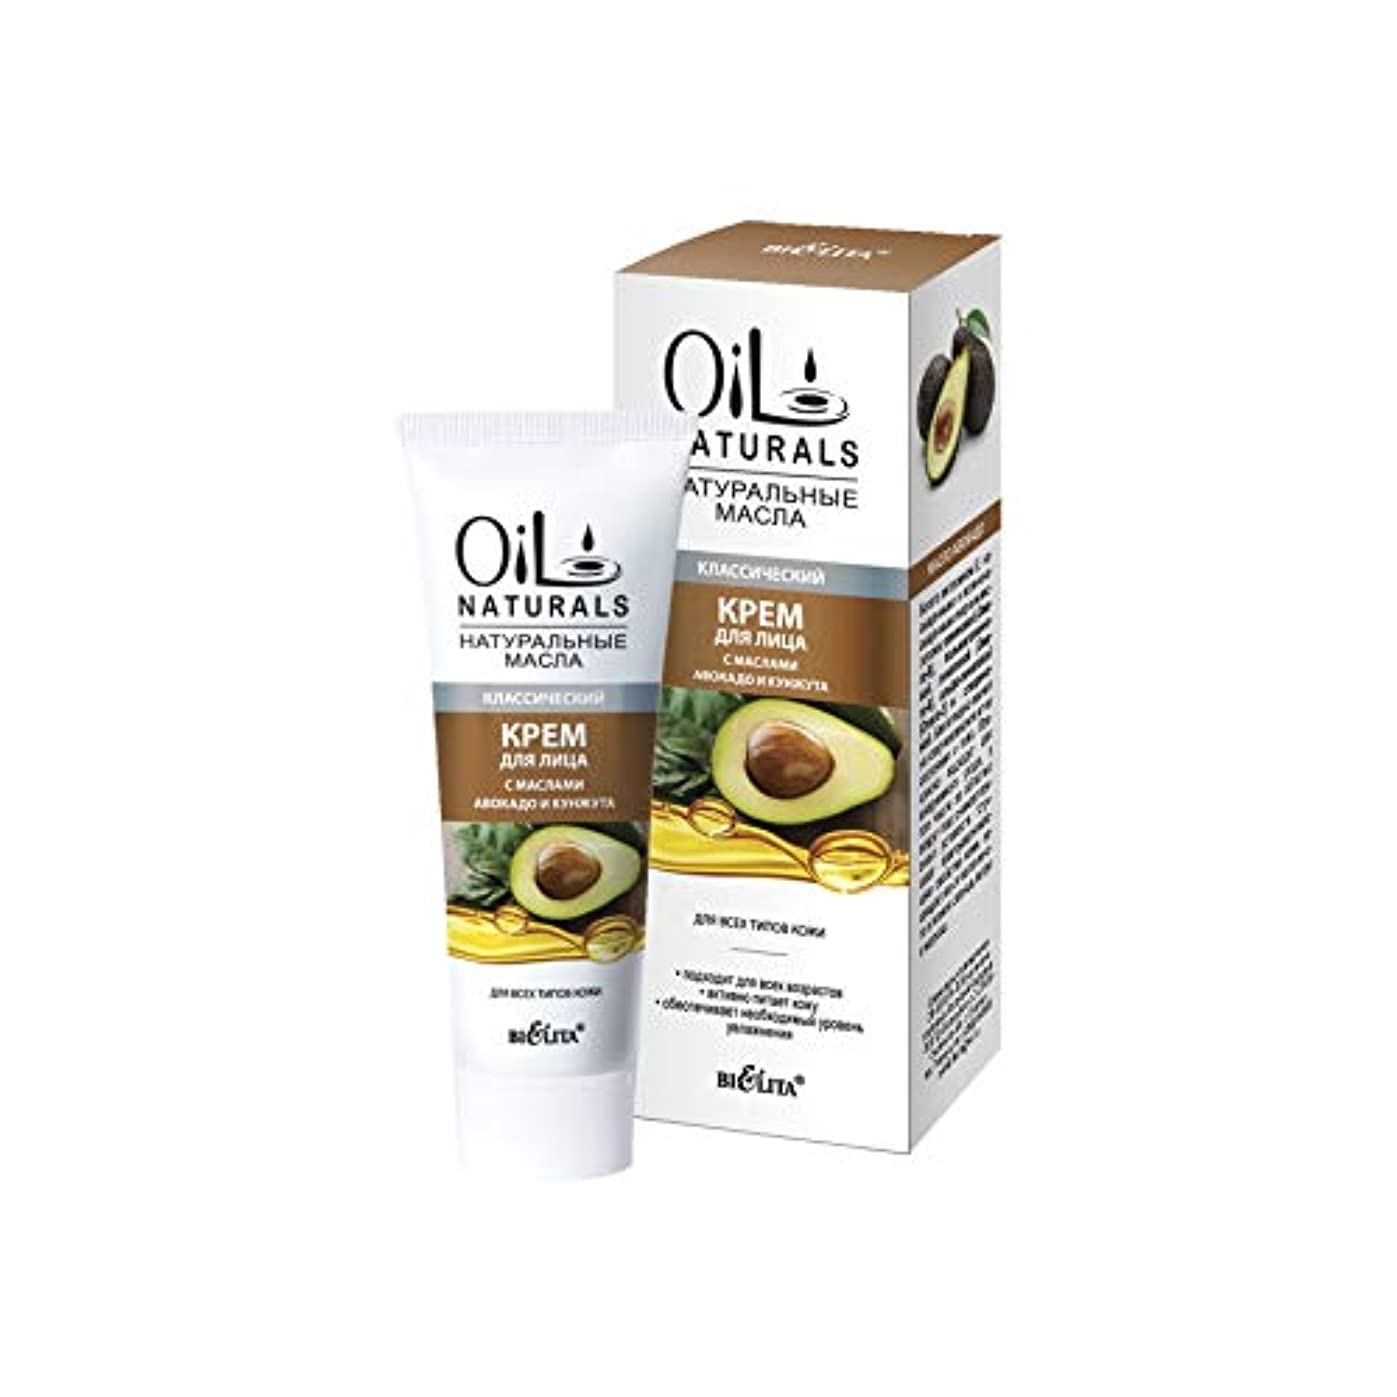 ファイル降ろす中級Bielita & Vitex |Oil Naturals Line | Classic Moisturizing Face Cream, for All Skin Types, 50 ml | Avocado Oil,...